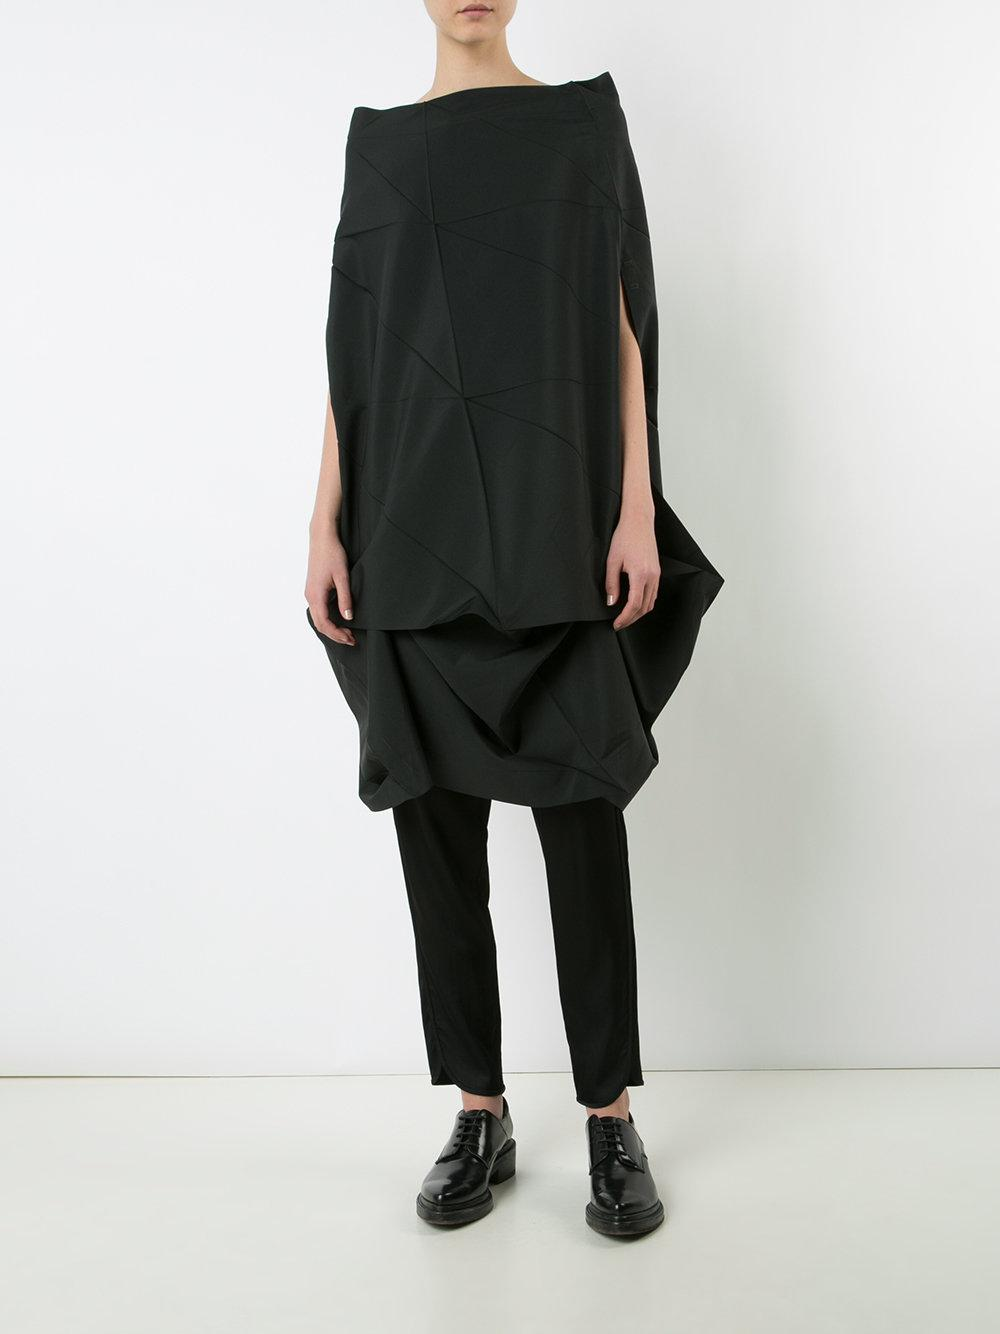 132 5. Issey Miyake Synthetic Draped Elongated Blouse in Black